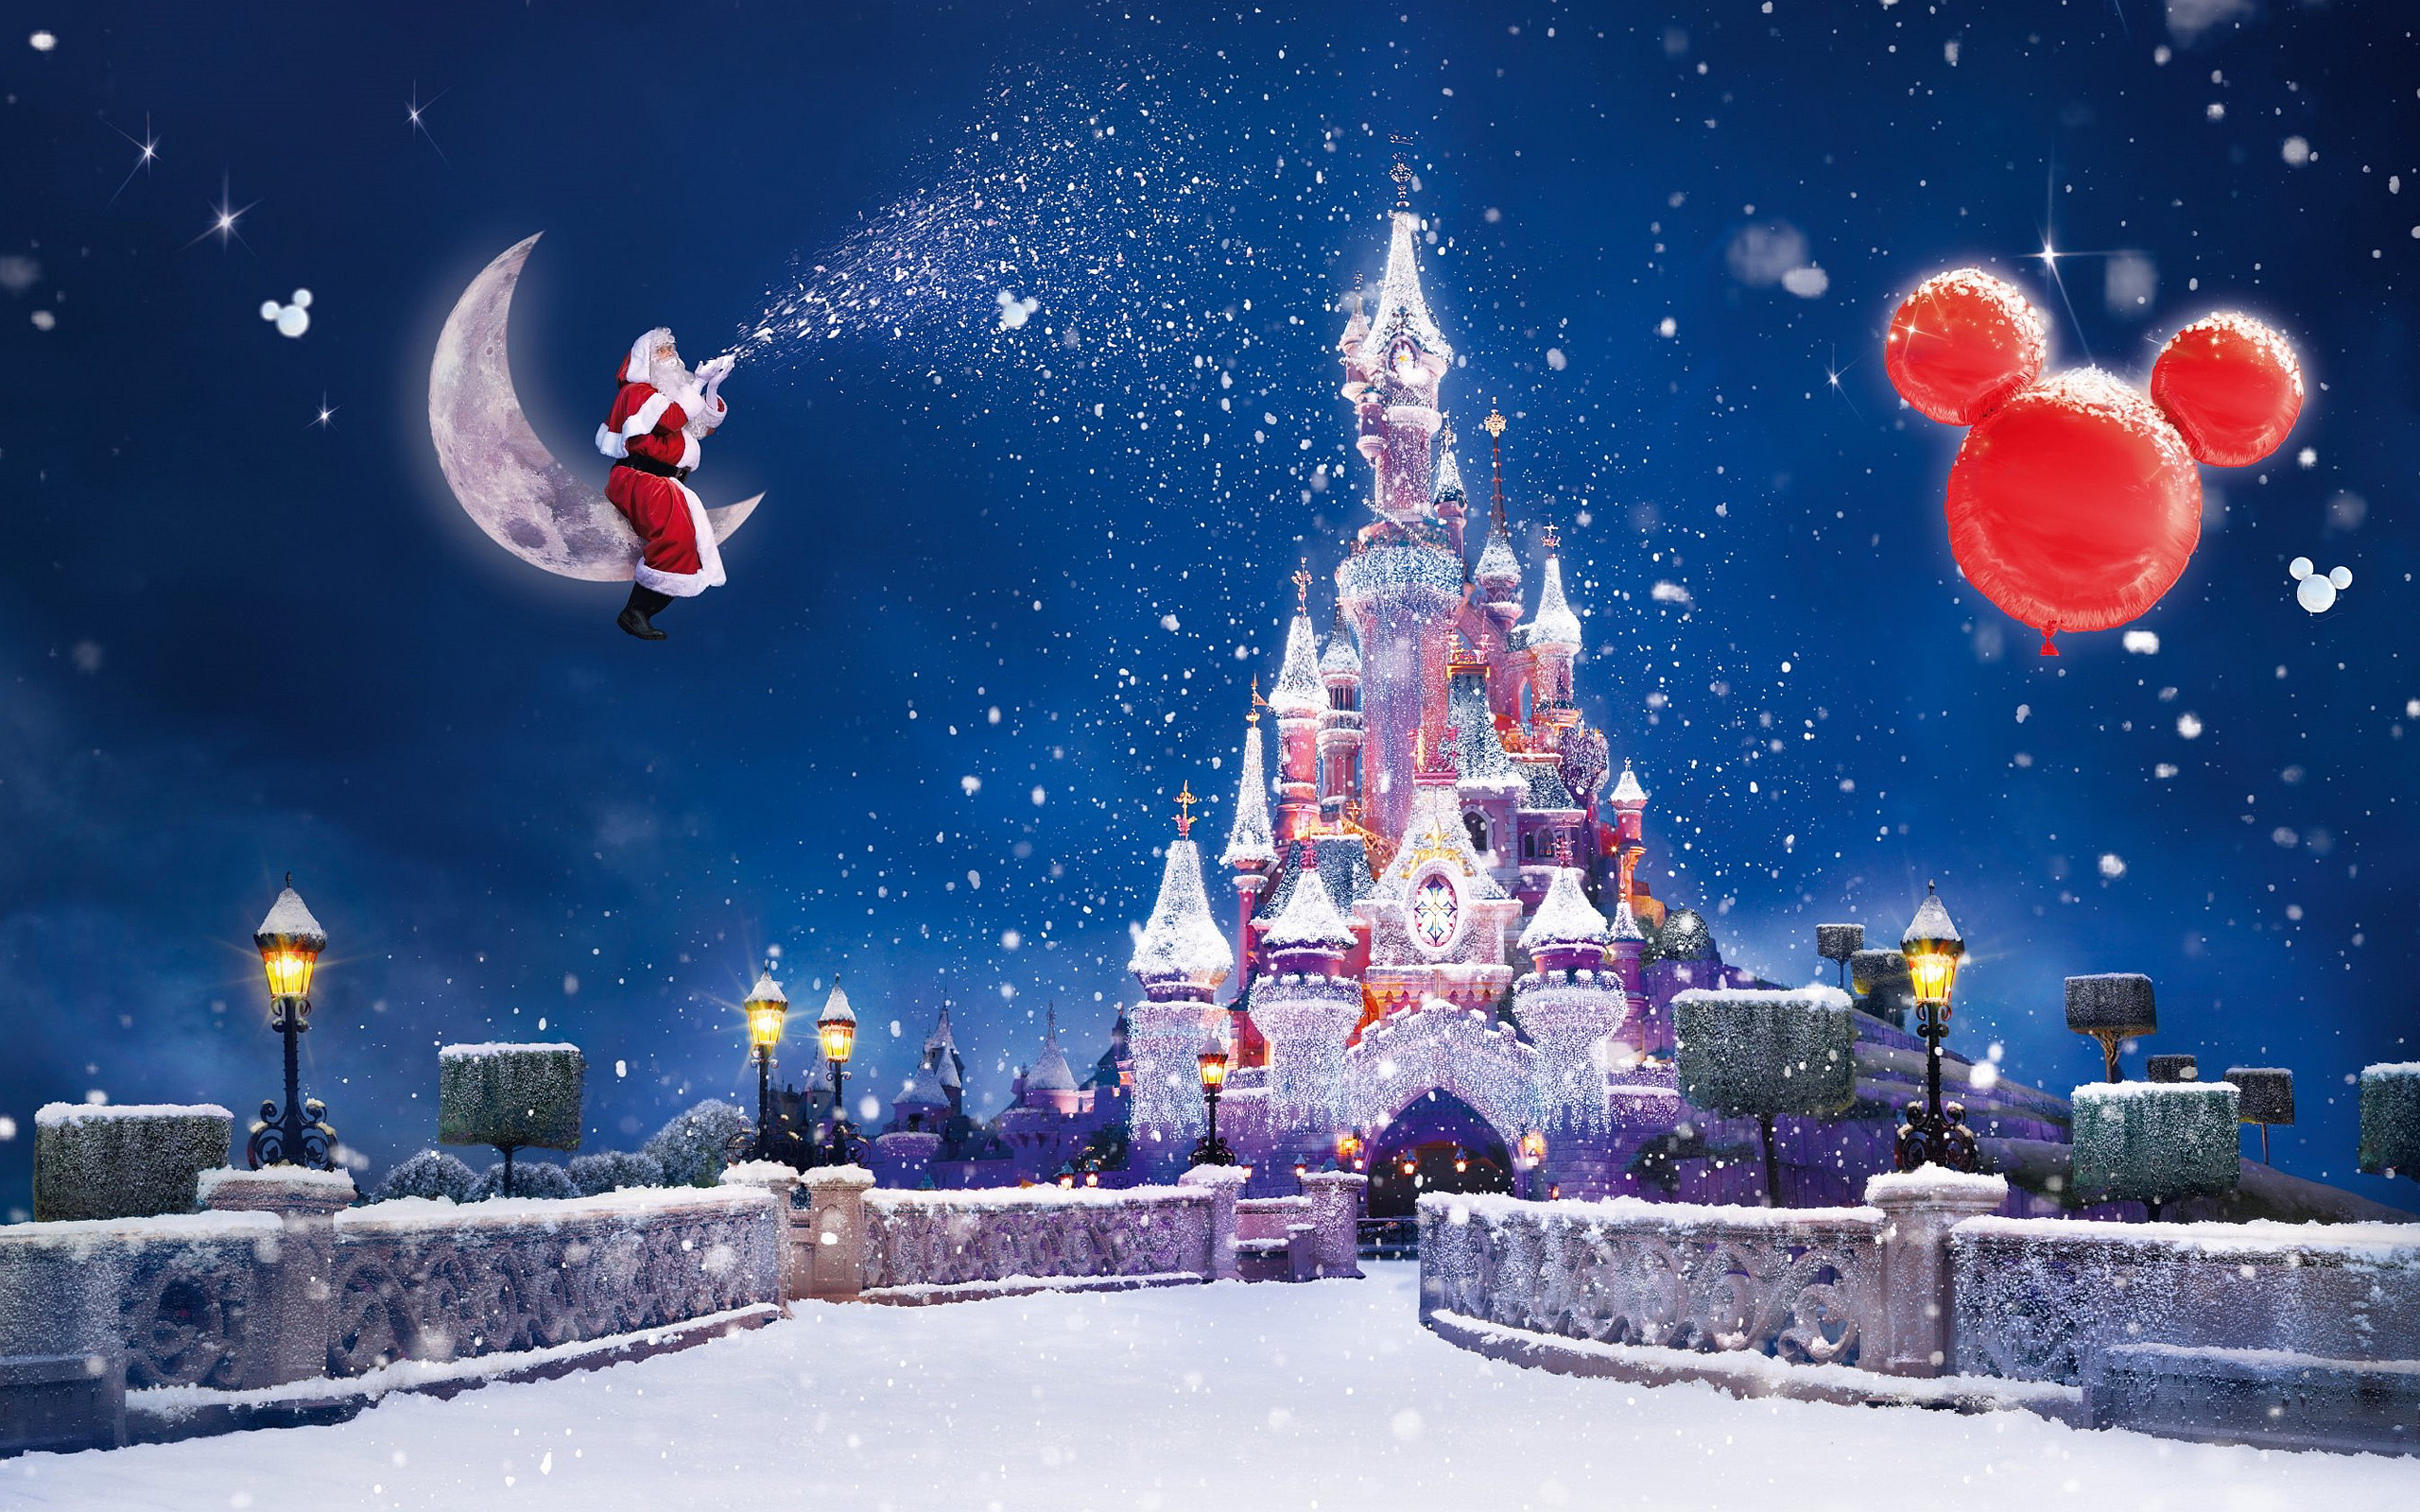 Happy Christmas Santa Showering Snow On Disney Hd Wallpaper